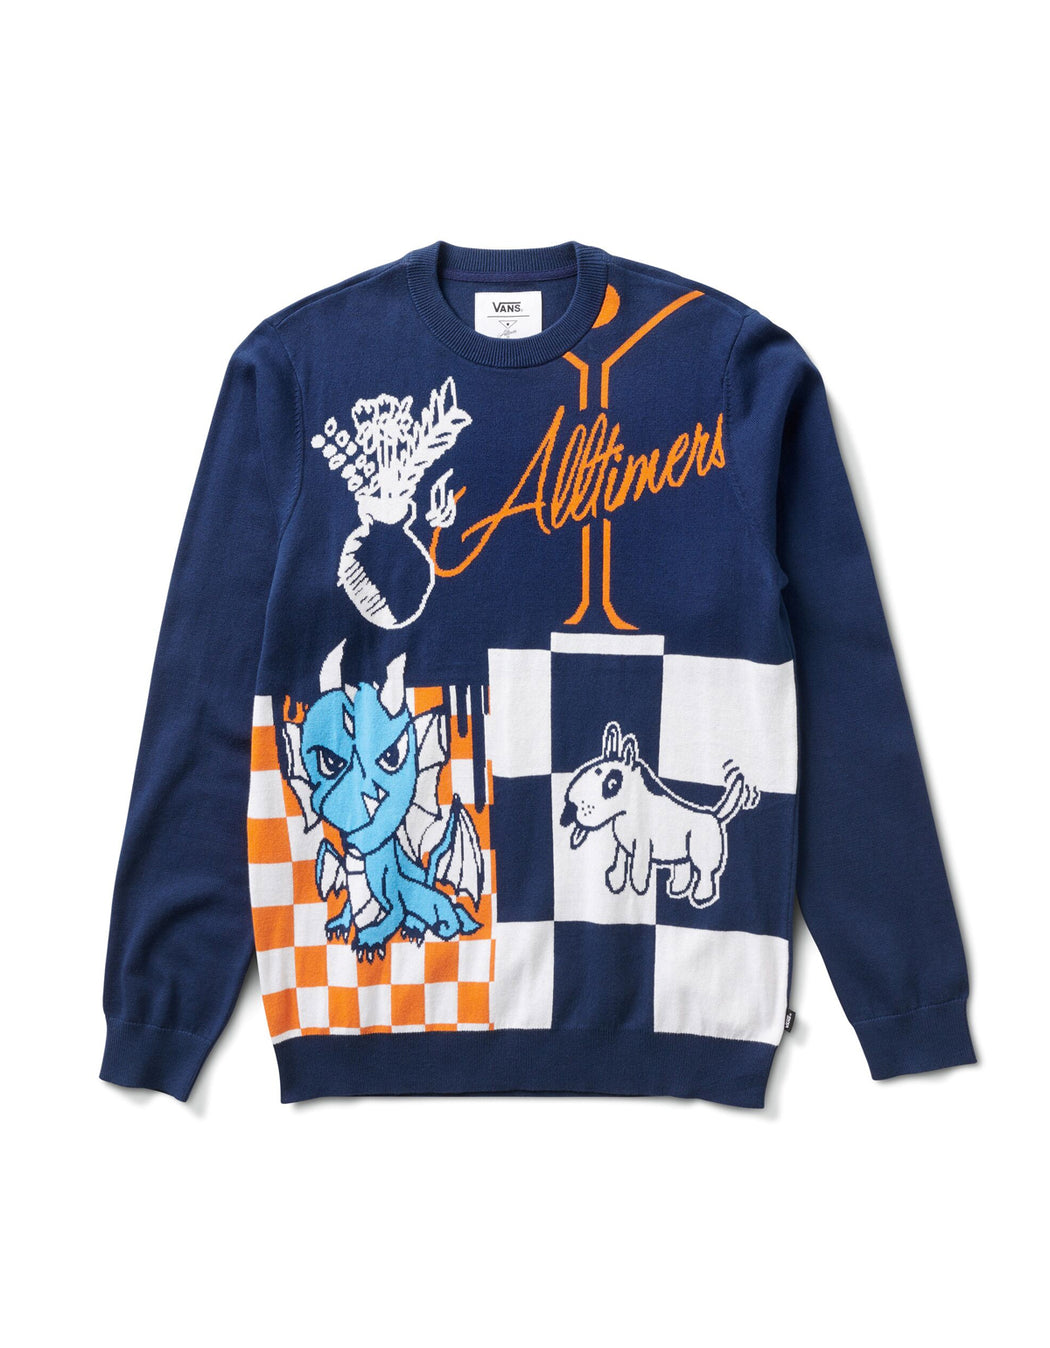 Vans X Alltimers Sweater Dress Blue